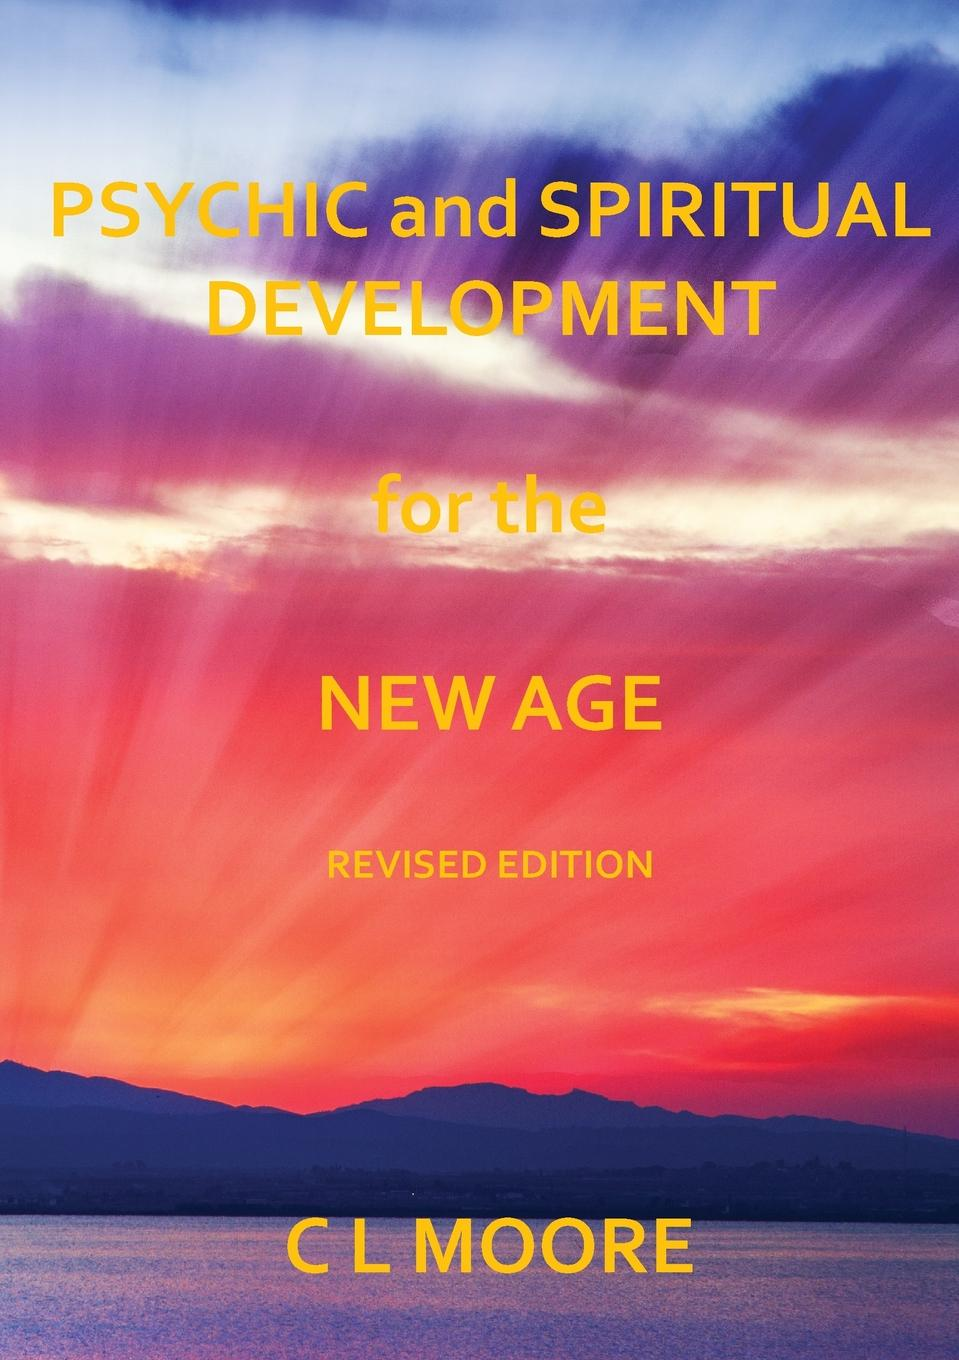 C L Moore Psychic and Spiritual Development For The New Age - Revised Edition anne dutton s letters on spiritual subjects